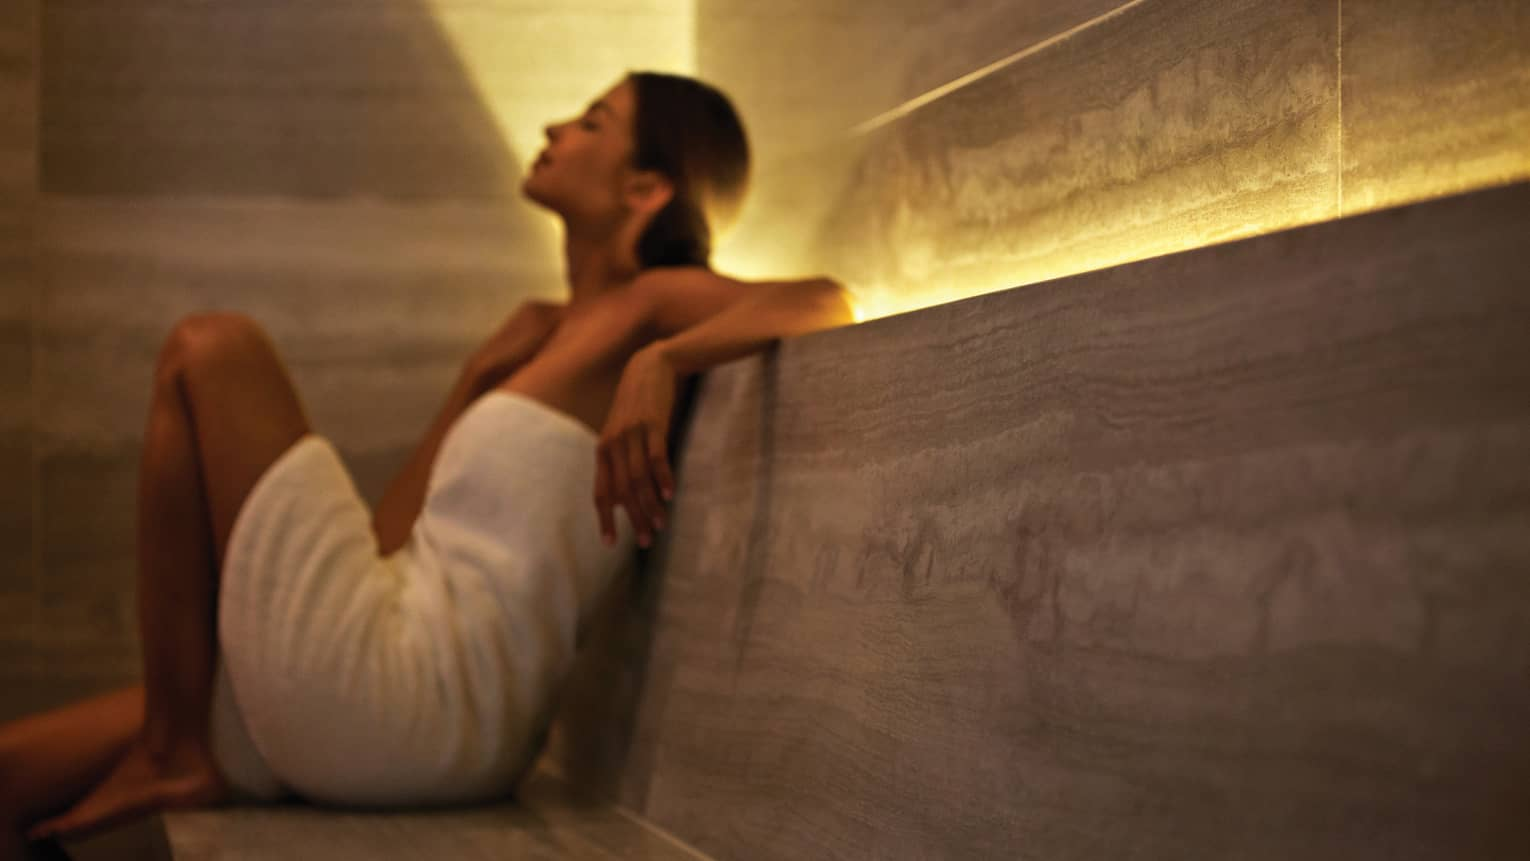 Woman wearing white towel leans back against spa wall